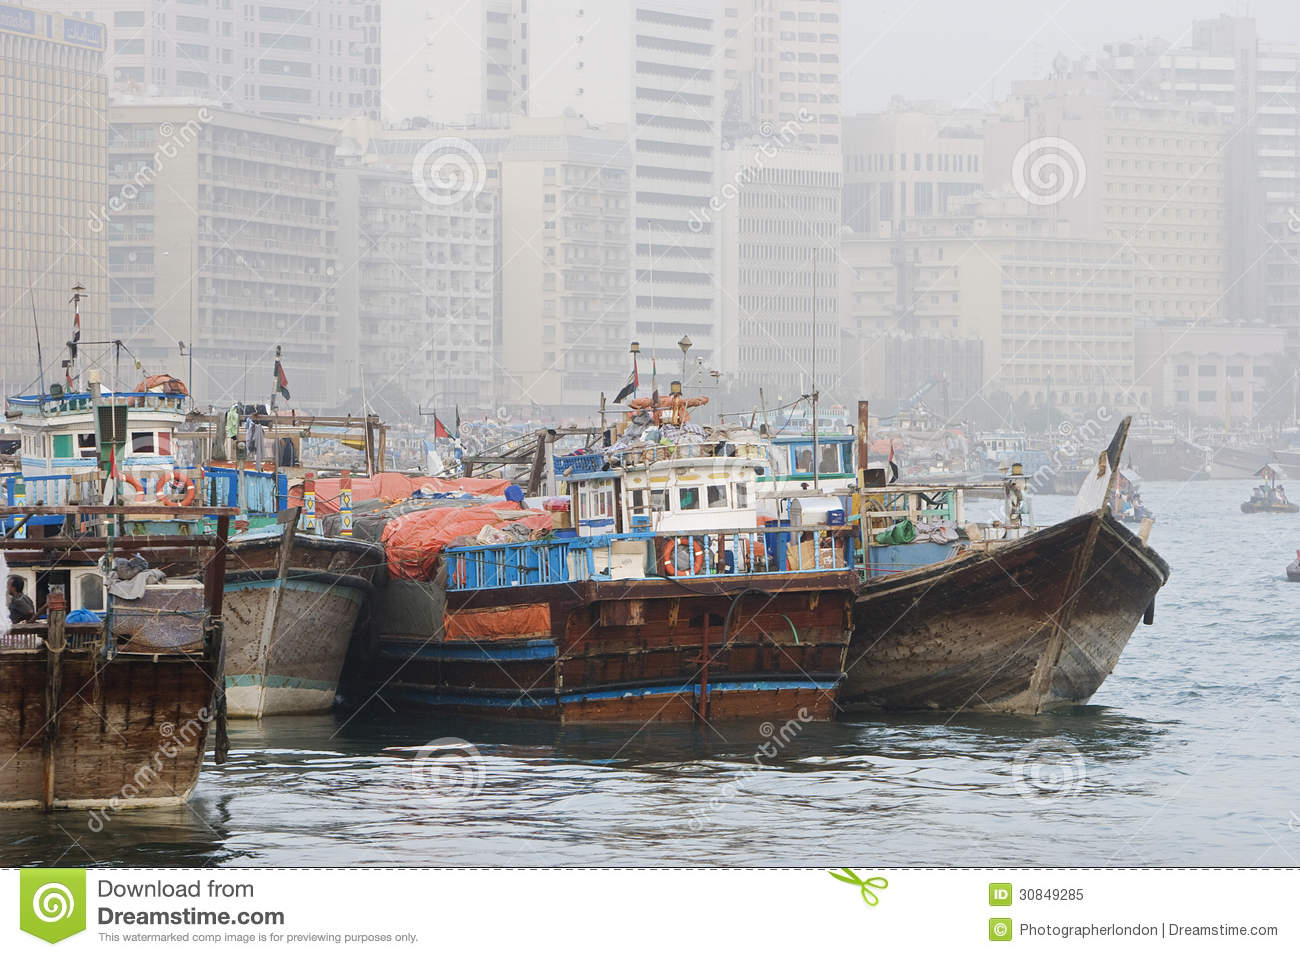 Dubai UAE Dhows Old Wooden Sailing Vessels Are Docked ...